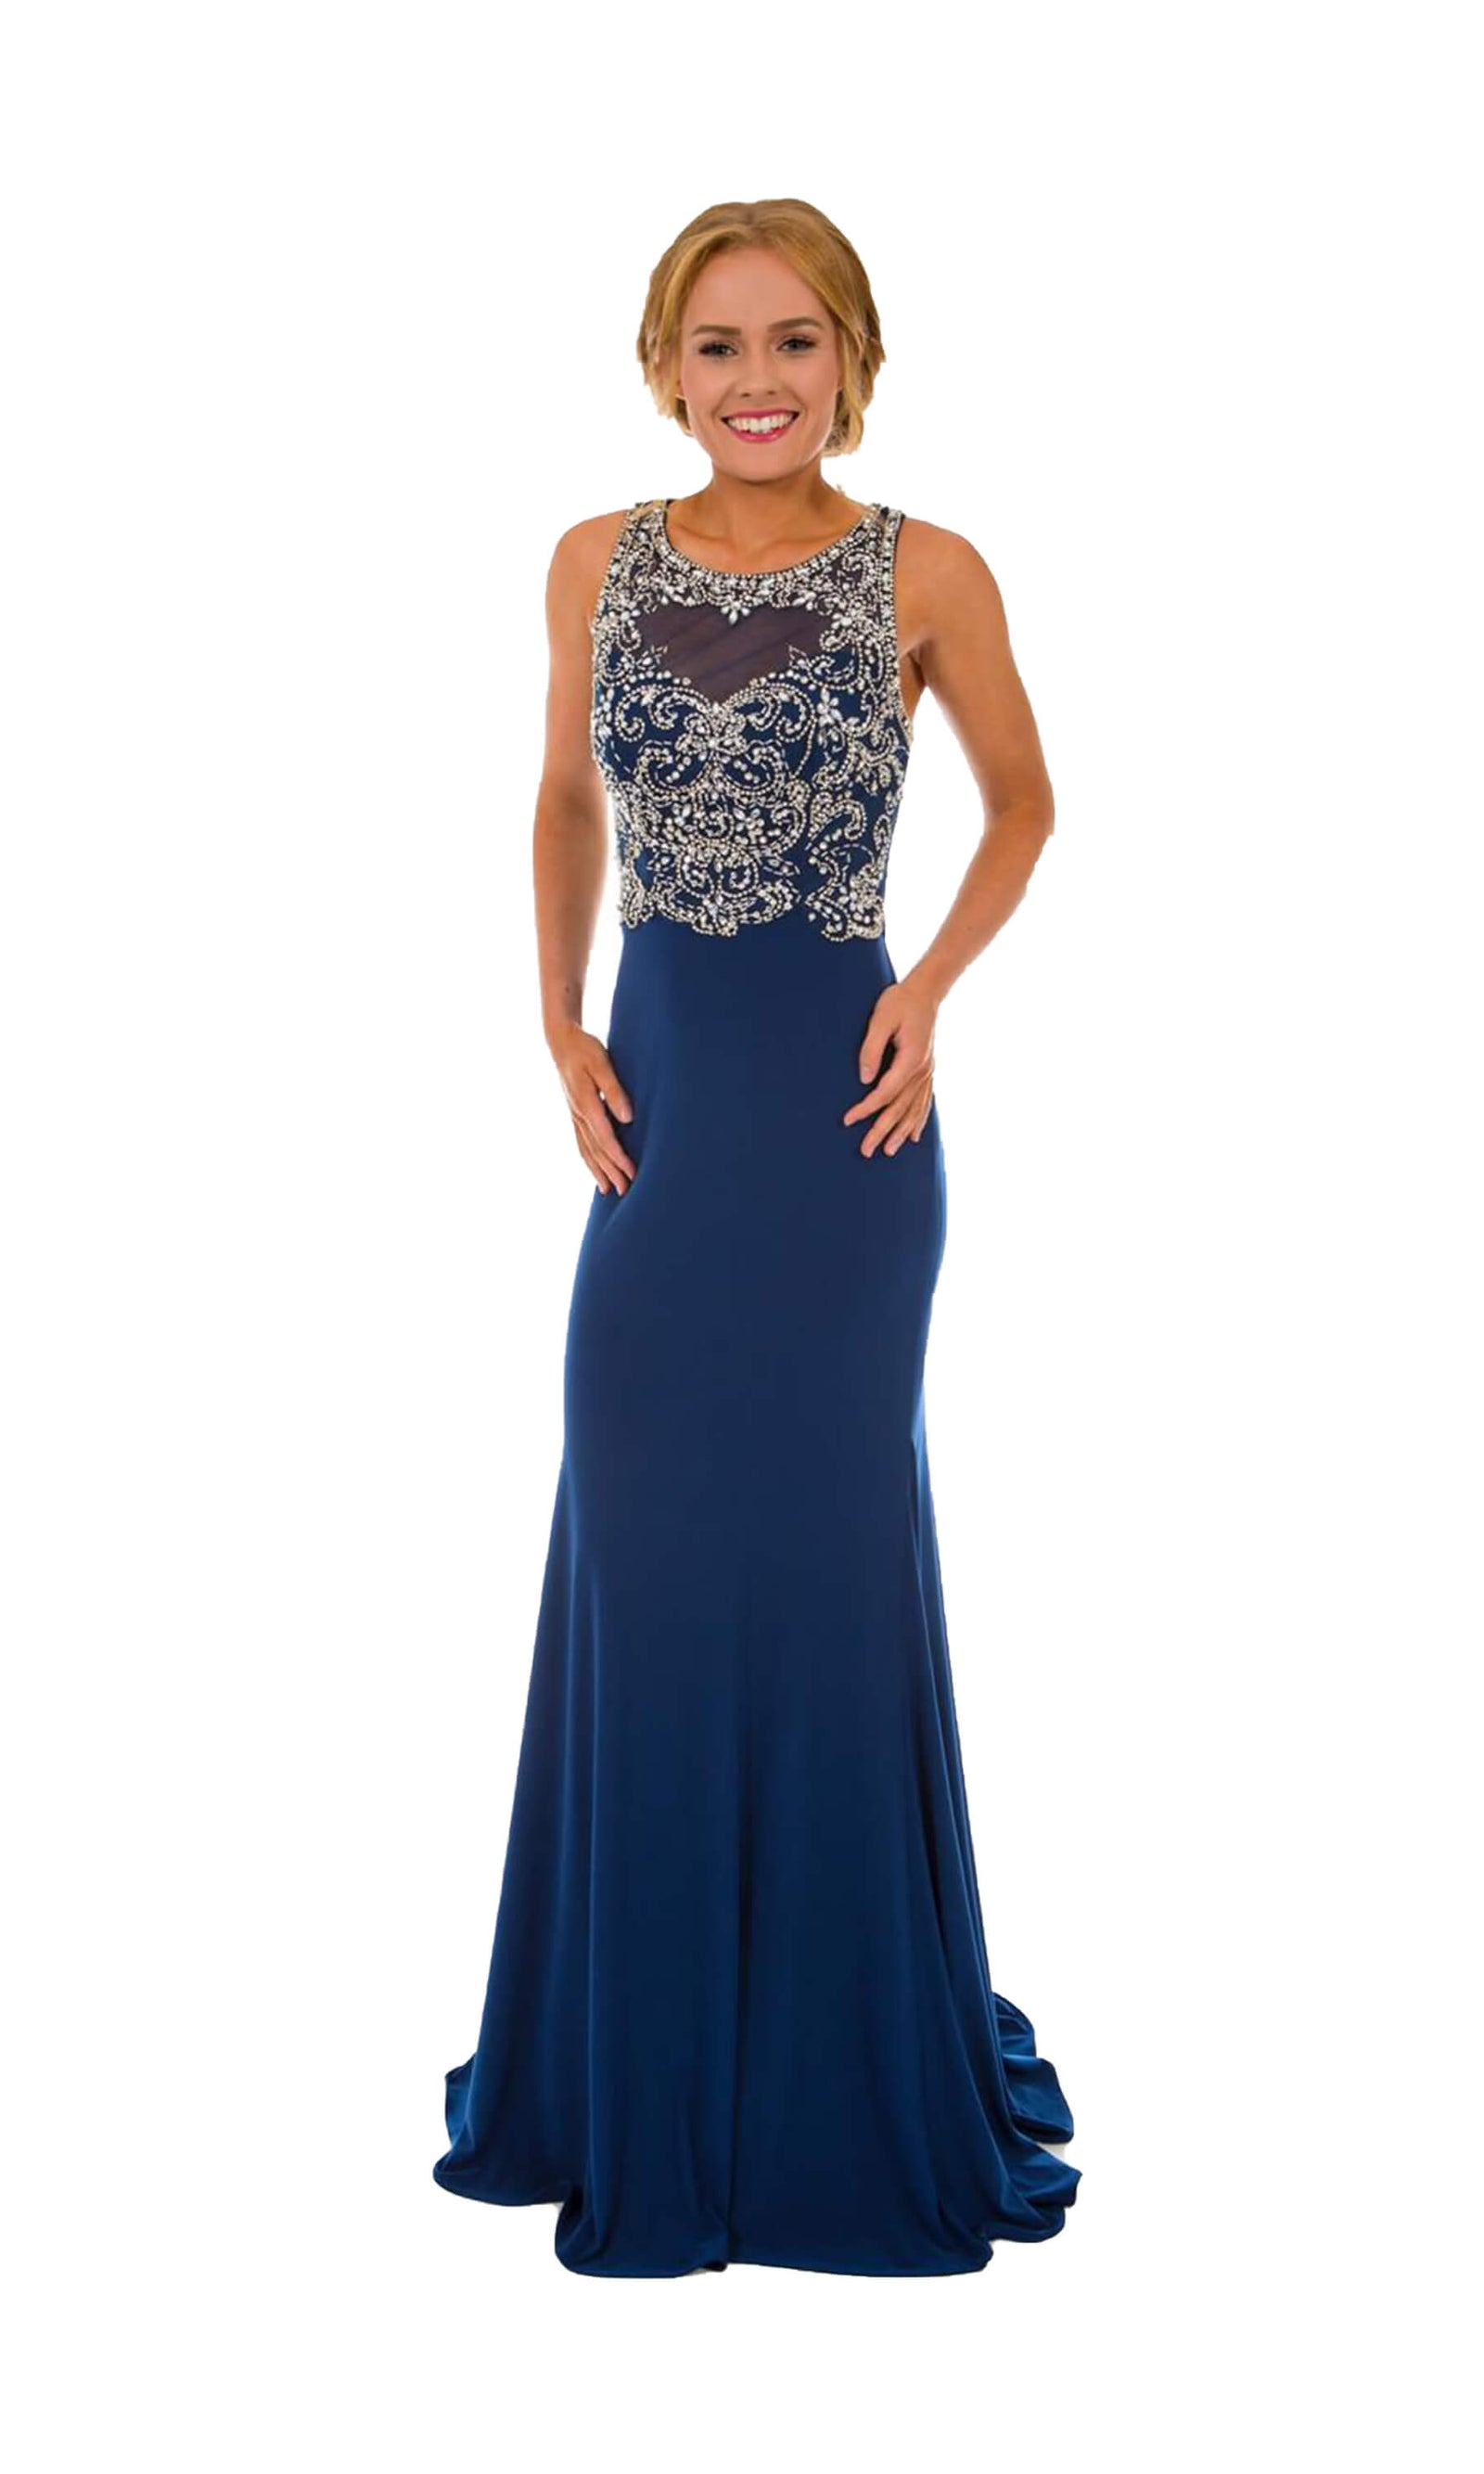 PF9480 French Navy Prom Frocks Dress With Keyhole Back - Fab Frocks